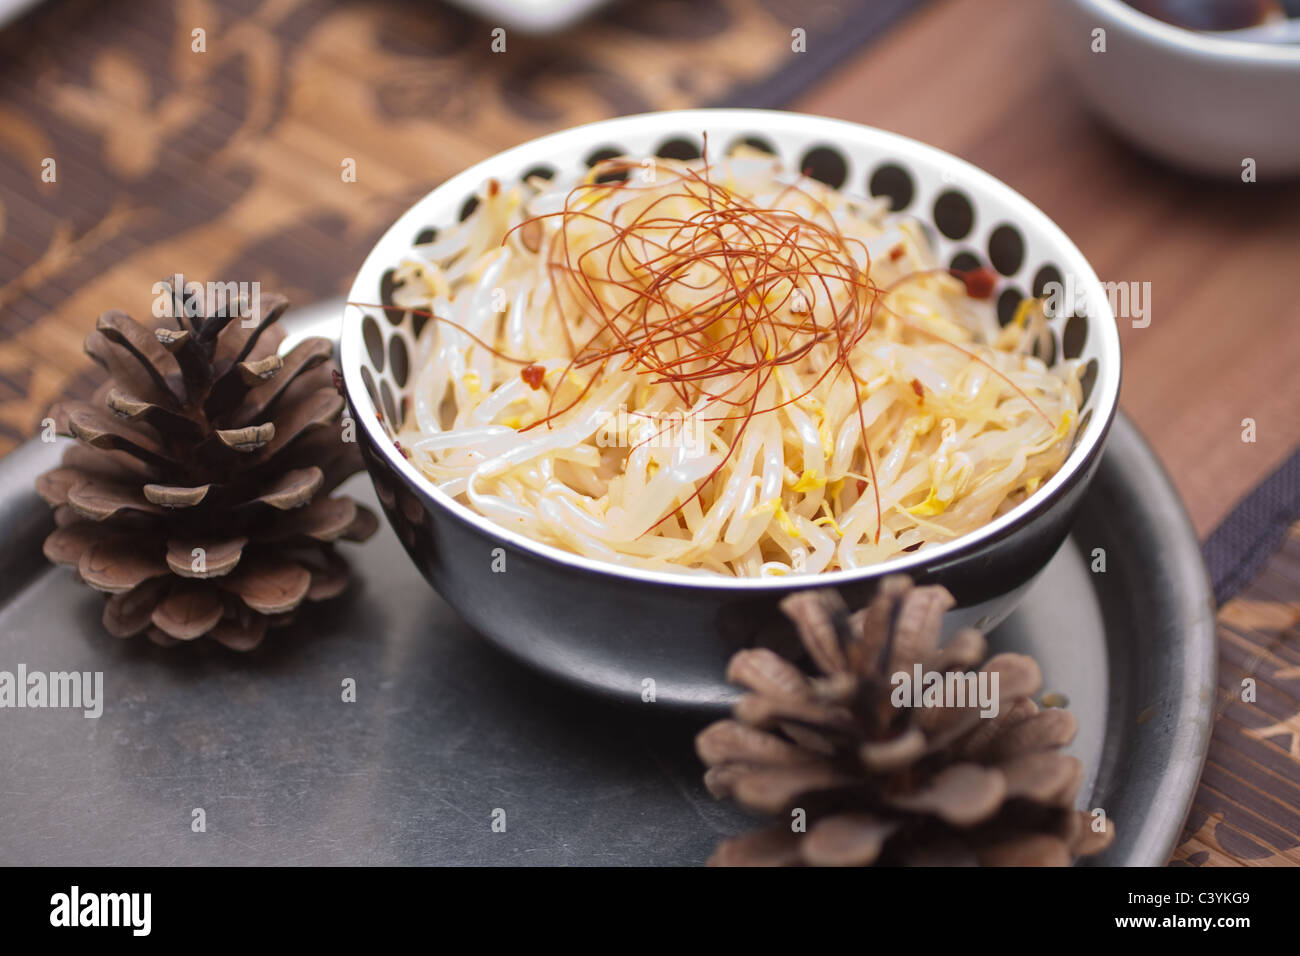 Bowl of mung bean seedling salad - Stock Image